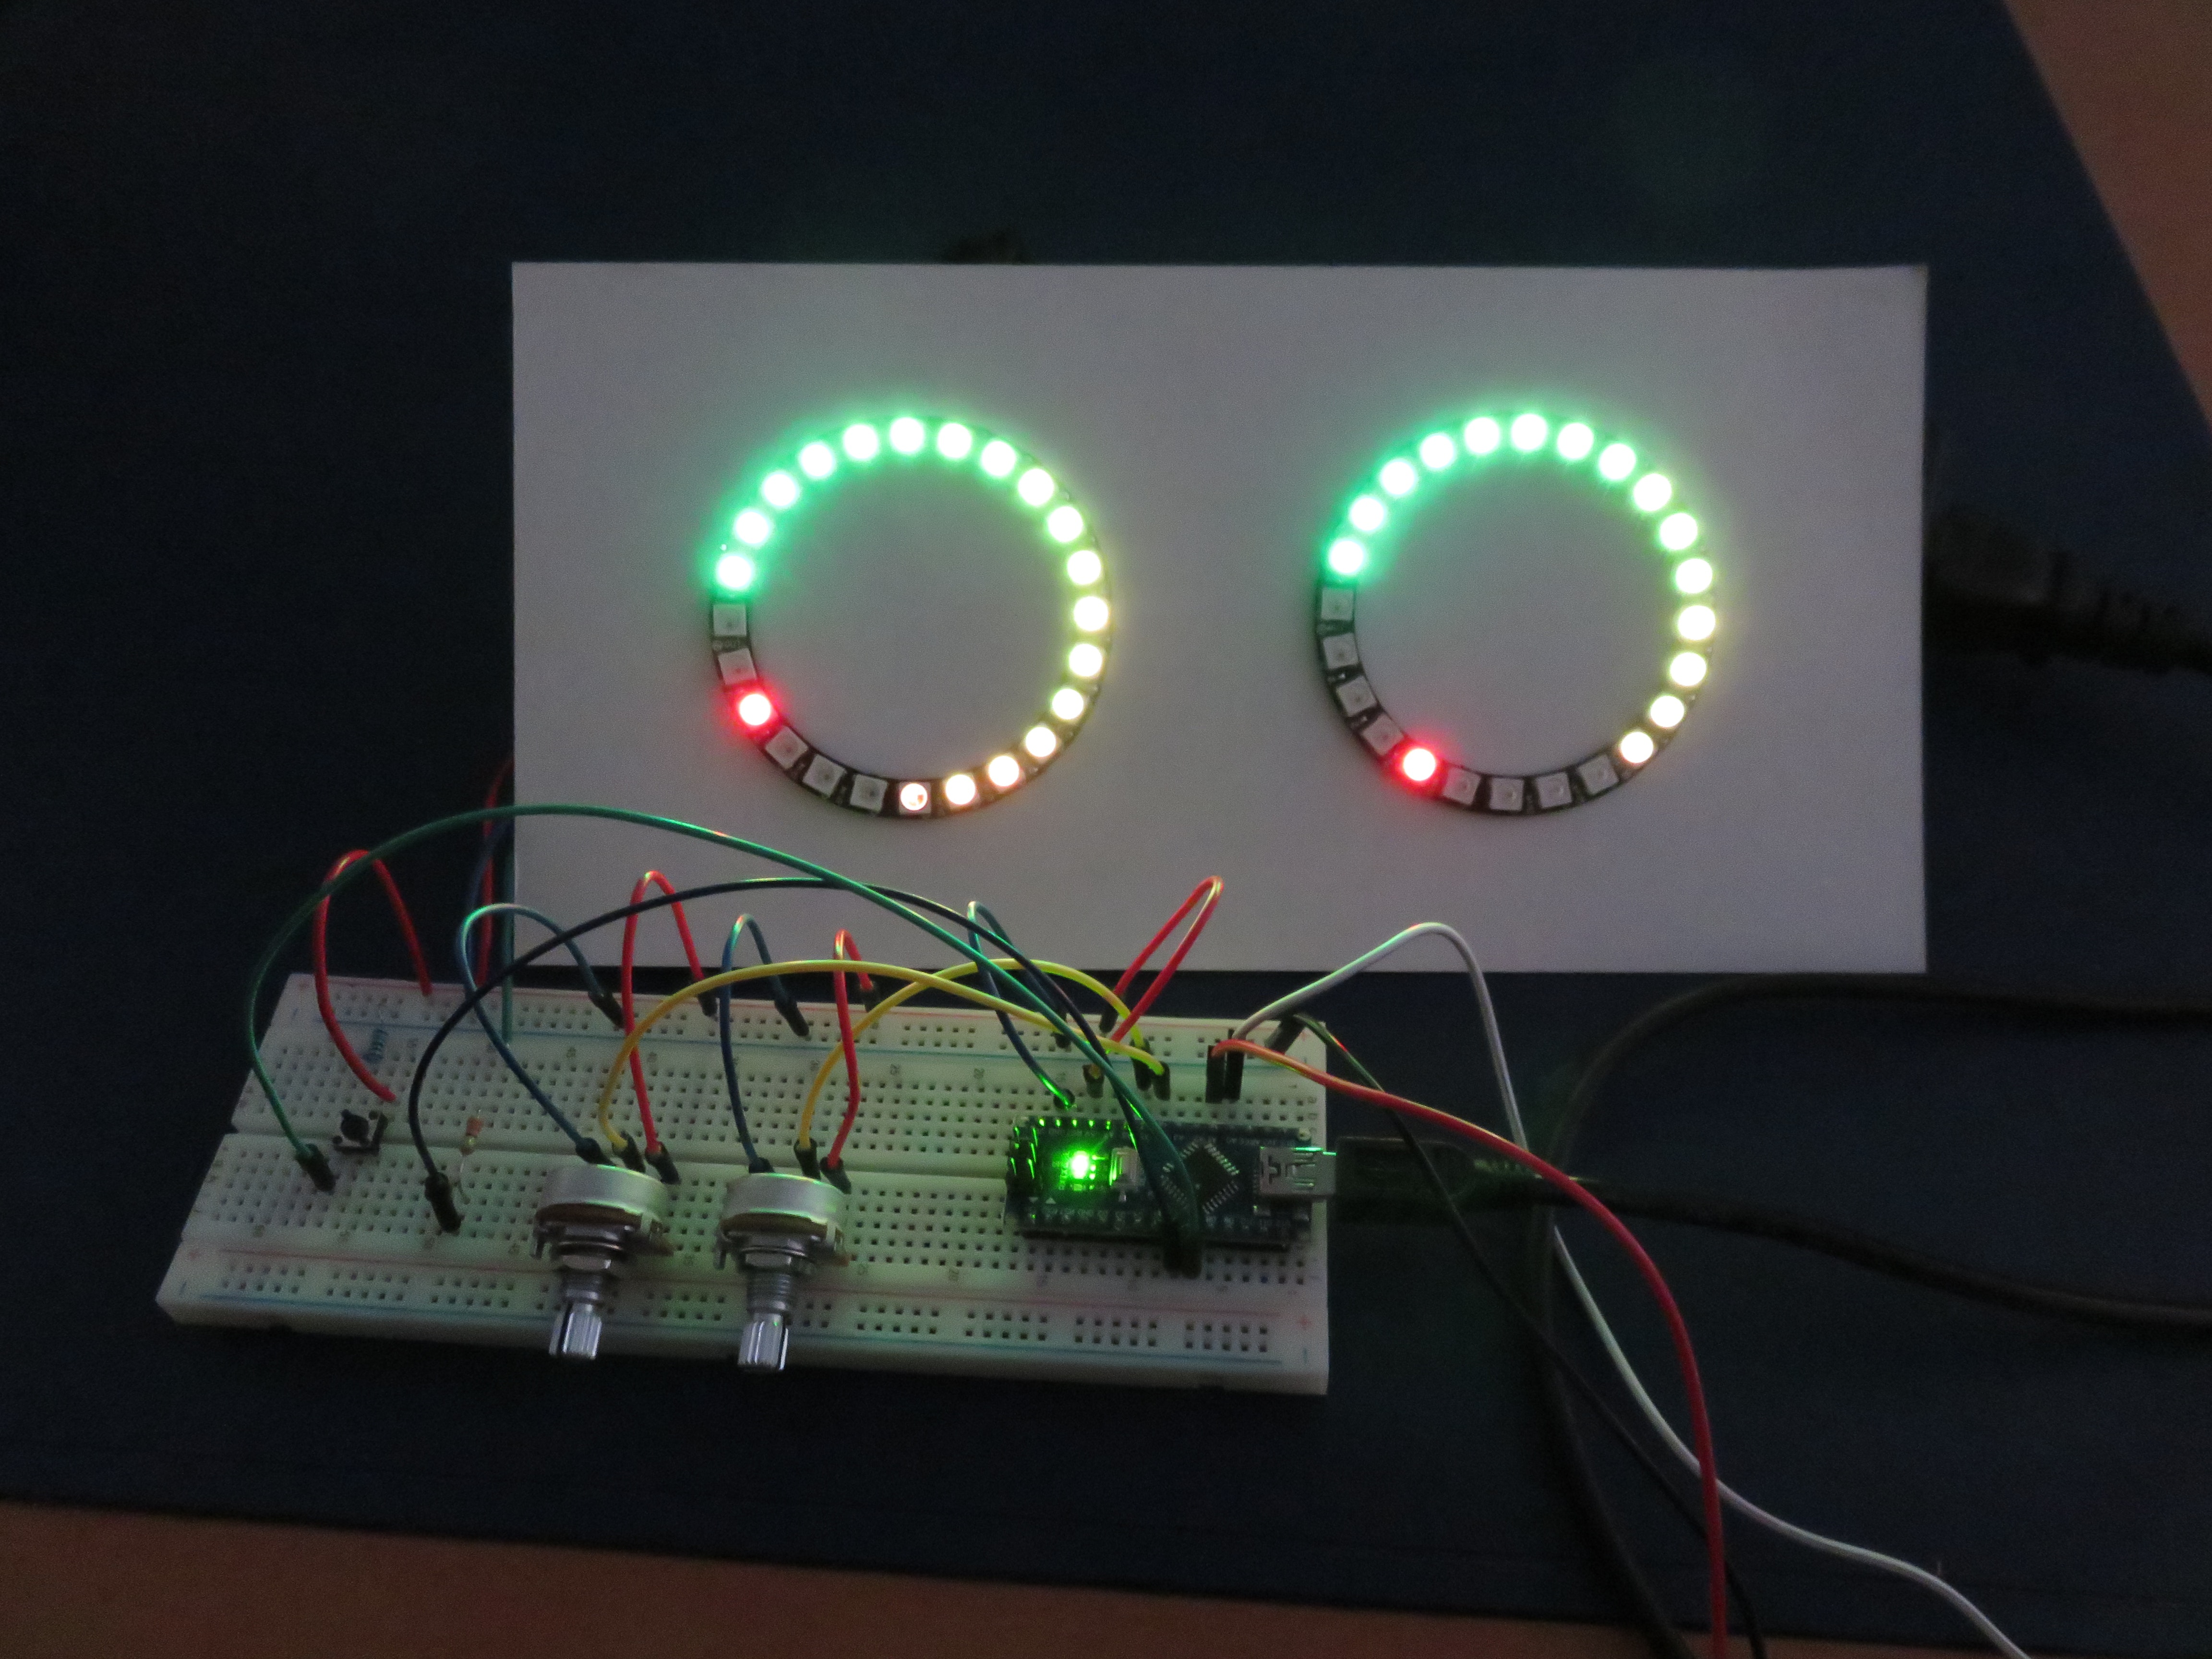 Perfect A Stereo VU Meter Built With An Arduino Nano And Two NeoPixel LED Rings.